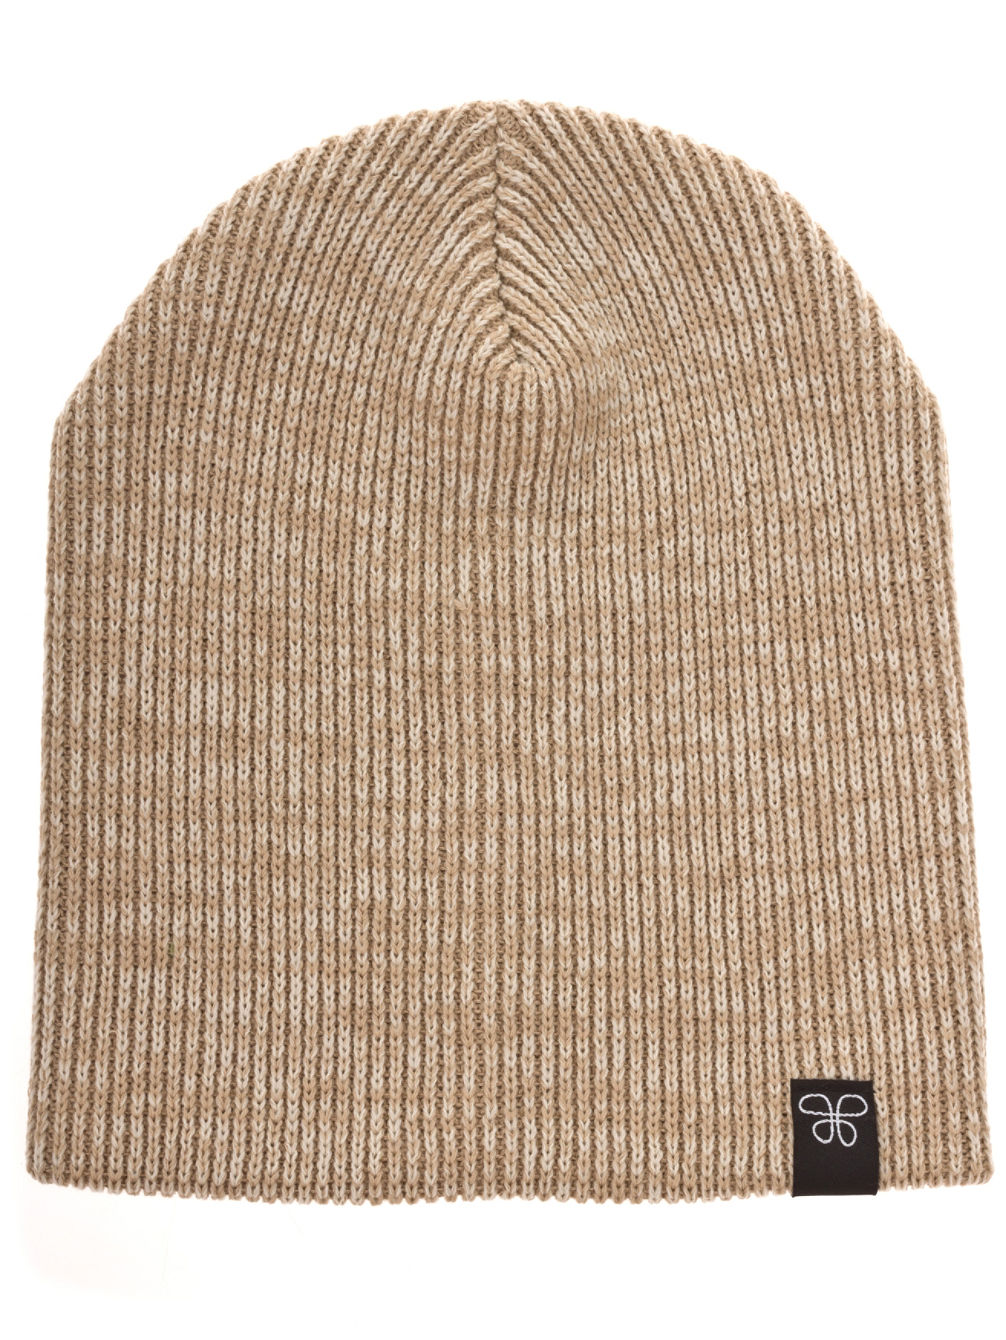 Fir Two Tone Beanie